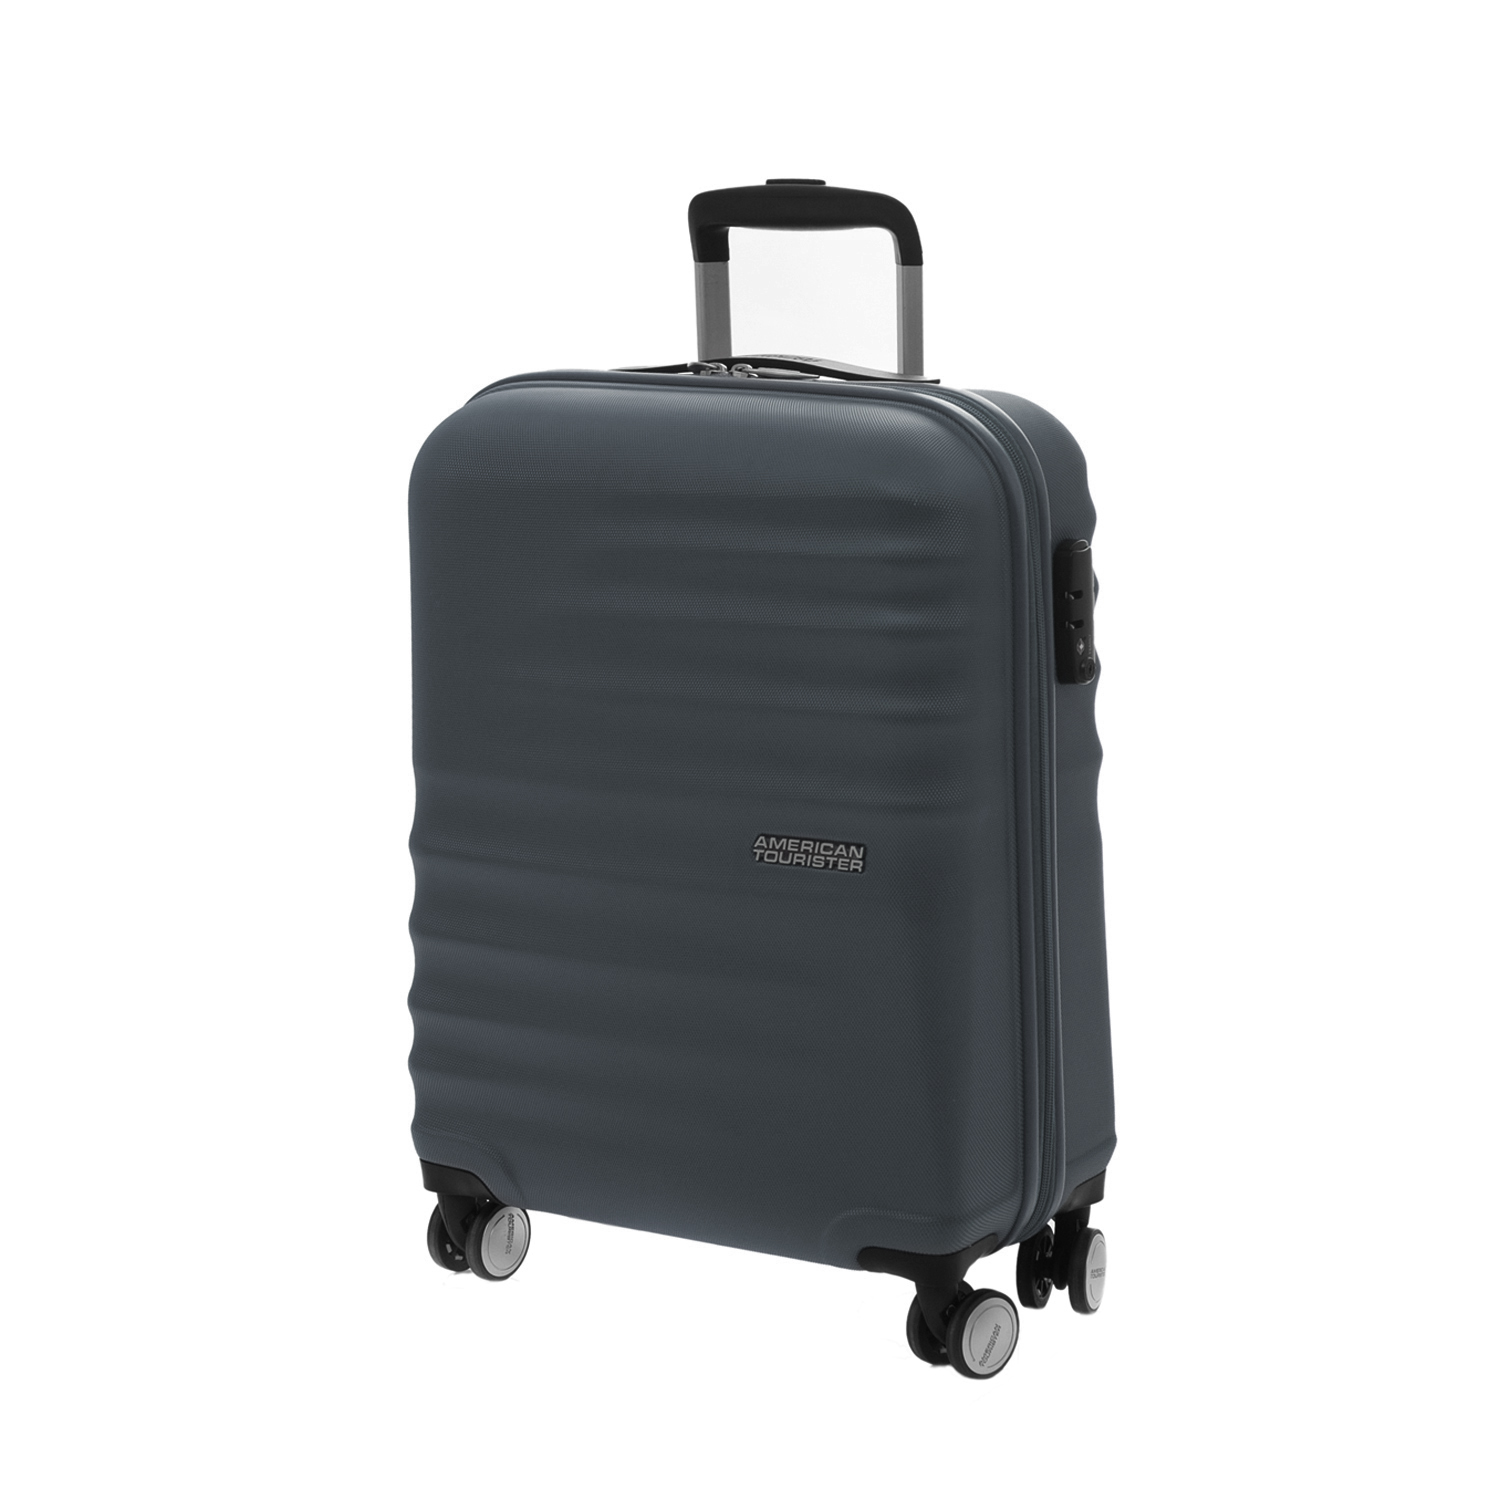 AMERICAN TOURISTER – Βαλίτσα καμπίνας American Tourister WAVEBREAKER SPINNER ανθρακί